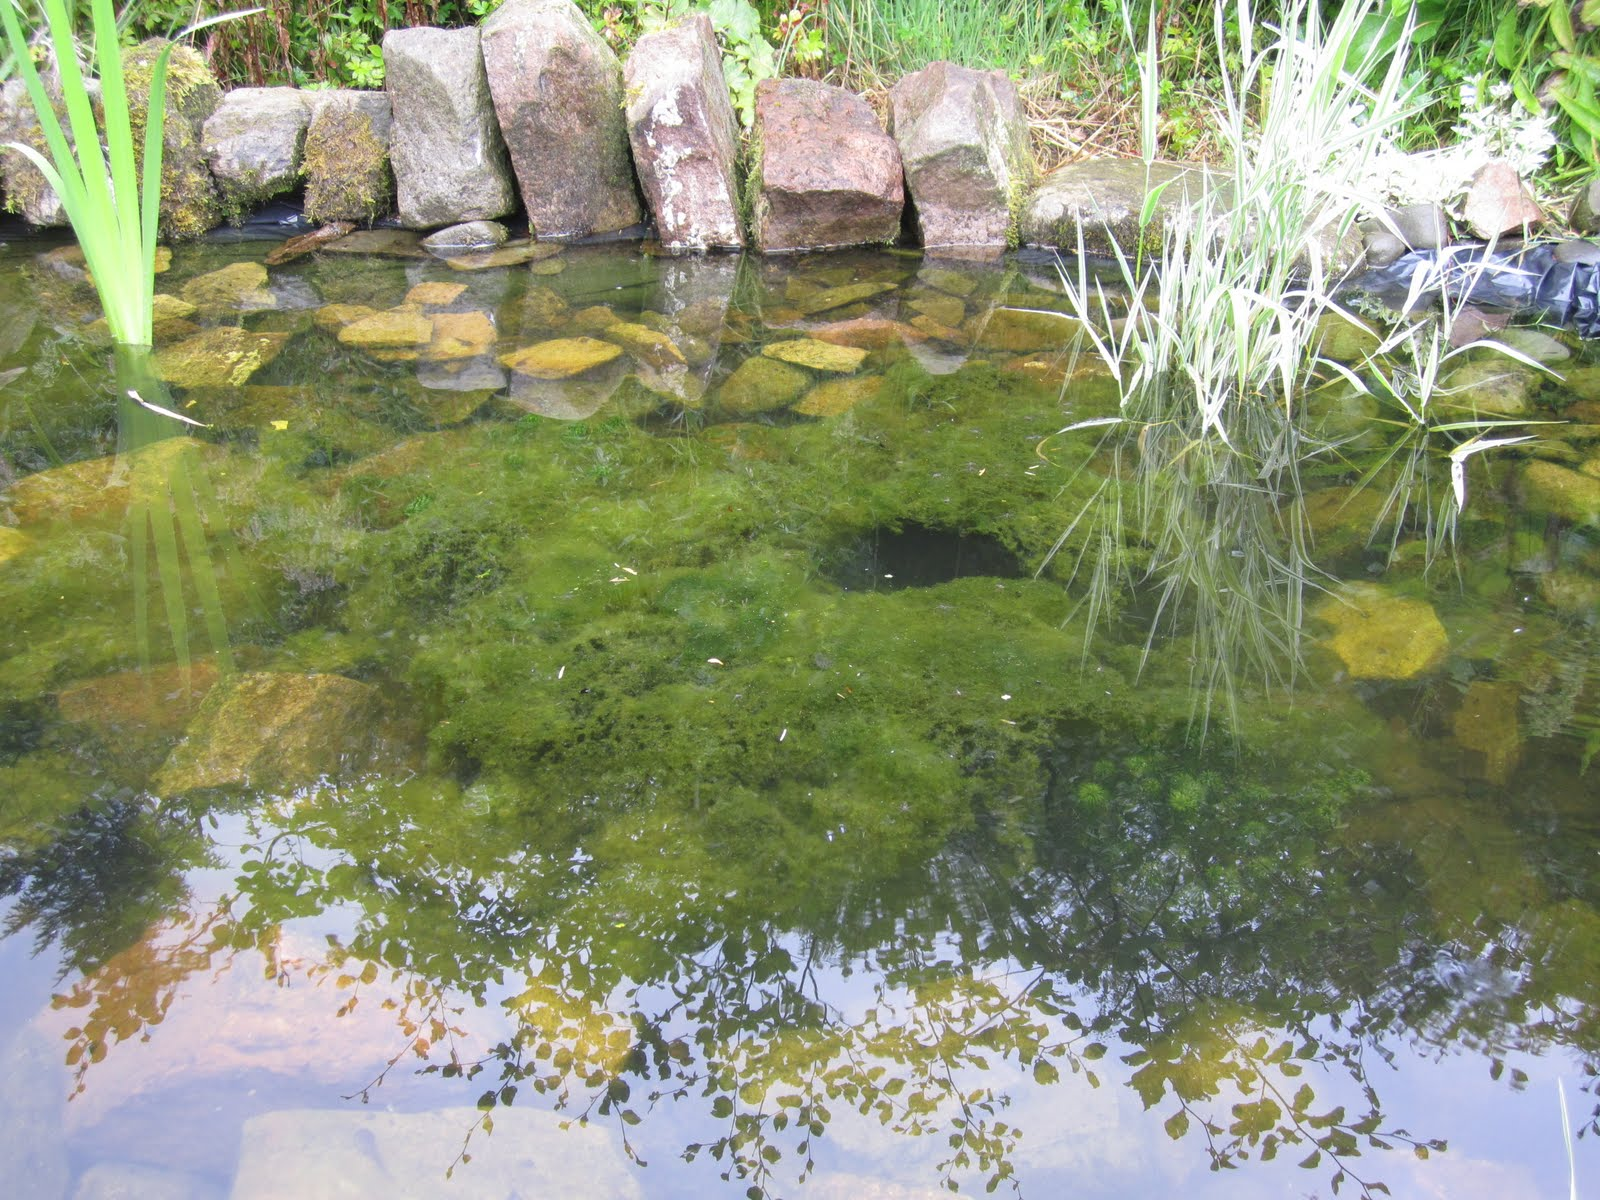 FindFindWeed ControlForFindFindWeed ControlForPonds. Search Faster, Better & Smarter at ZapMeta Now!